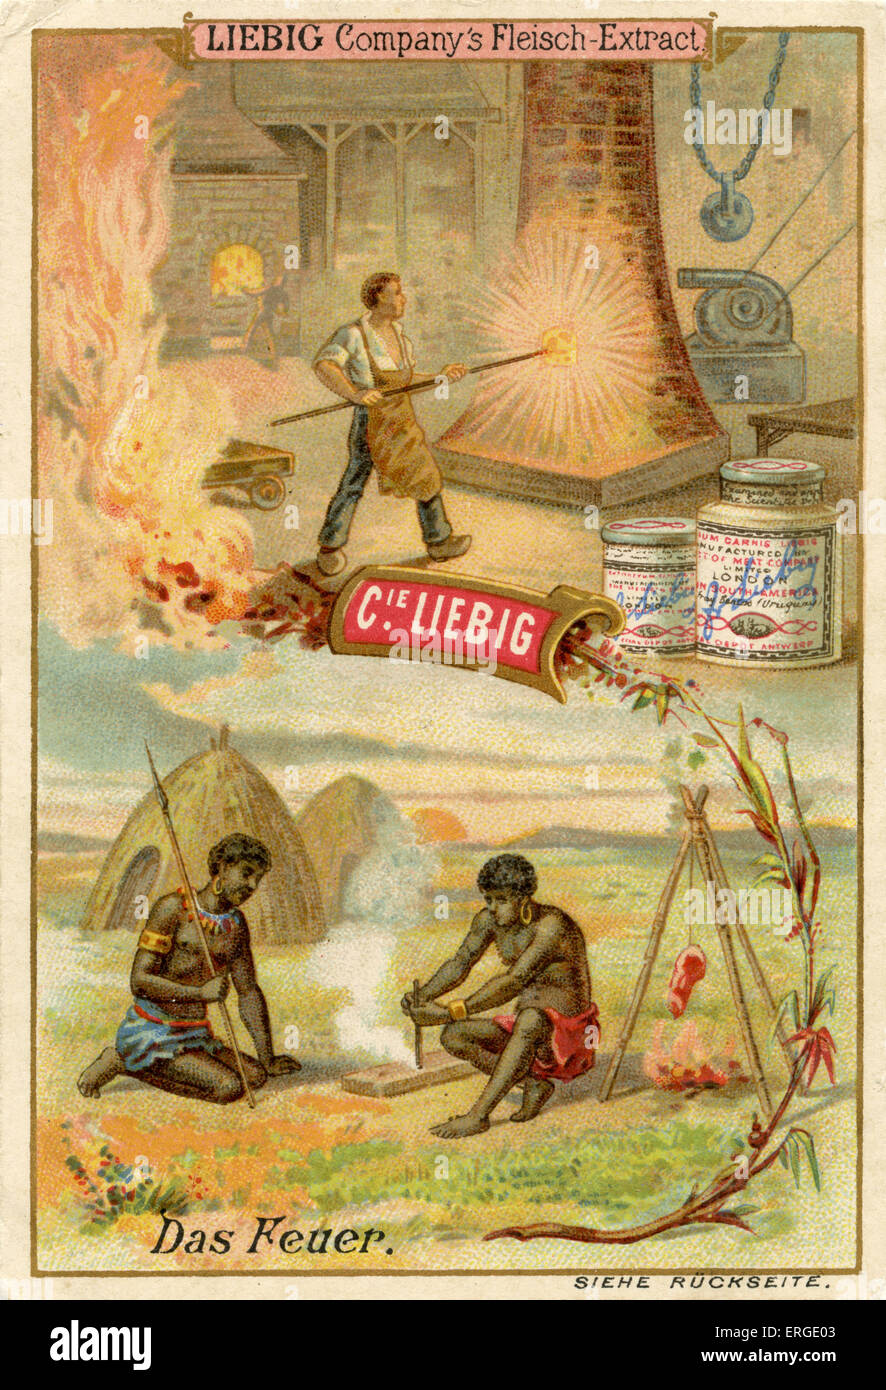 Fire ('Das Feuer') - Liebig Company collectible cards,  natural resources series. Published 1892. - Stock Image